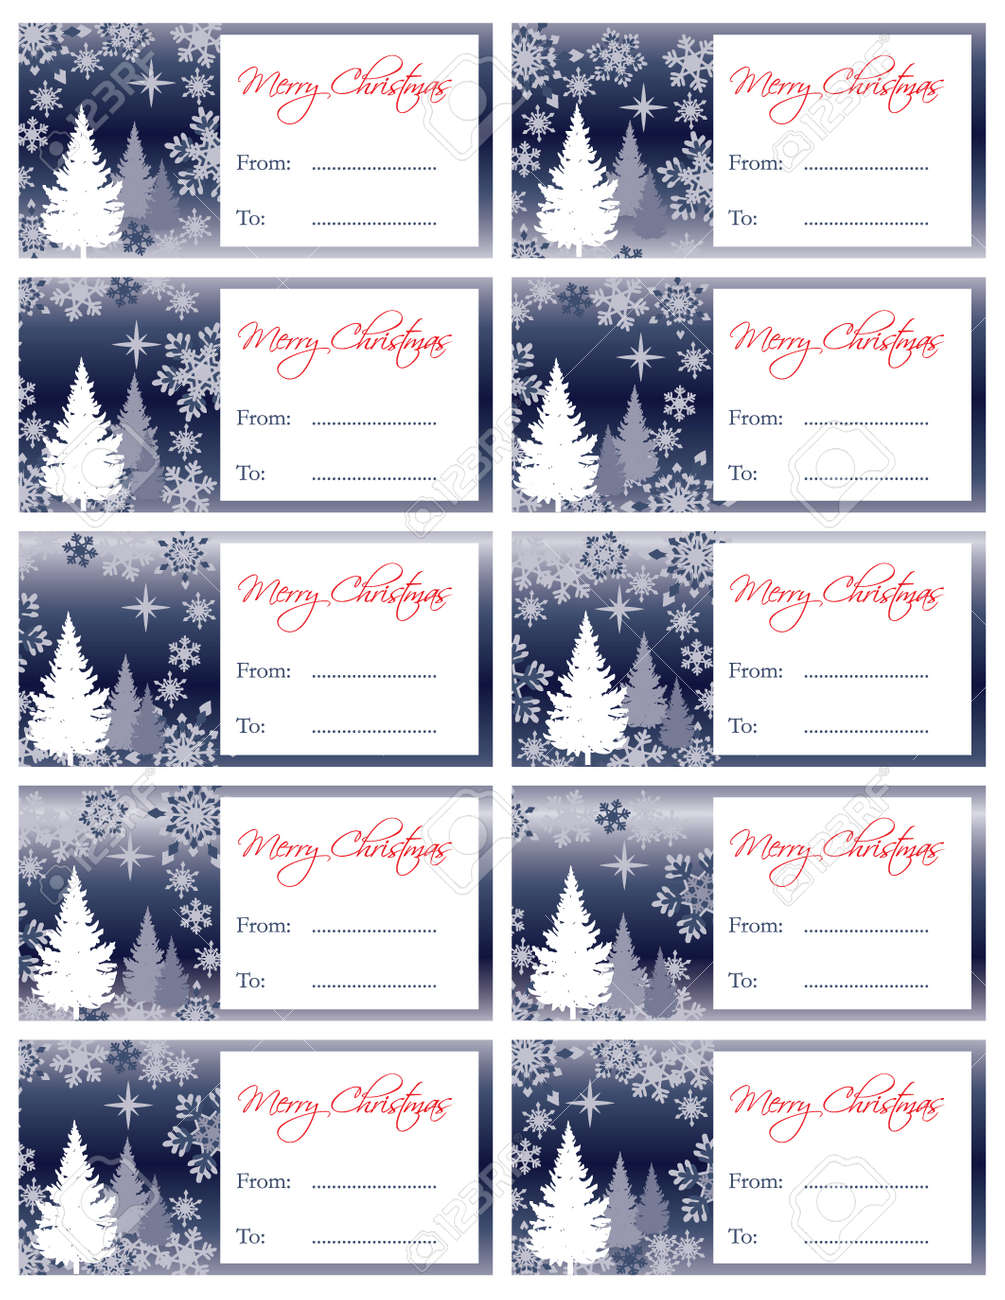 Matching Holiday Gift Tags Collection Stock Vector - 10946070